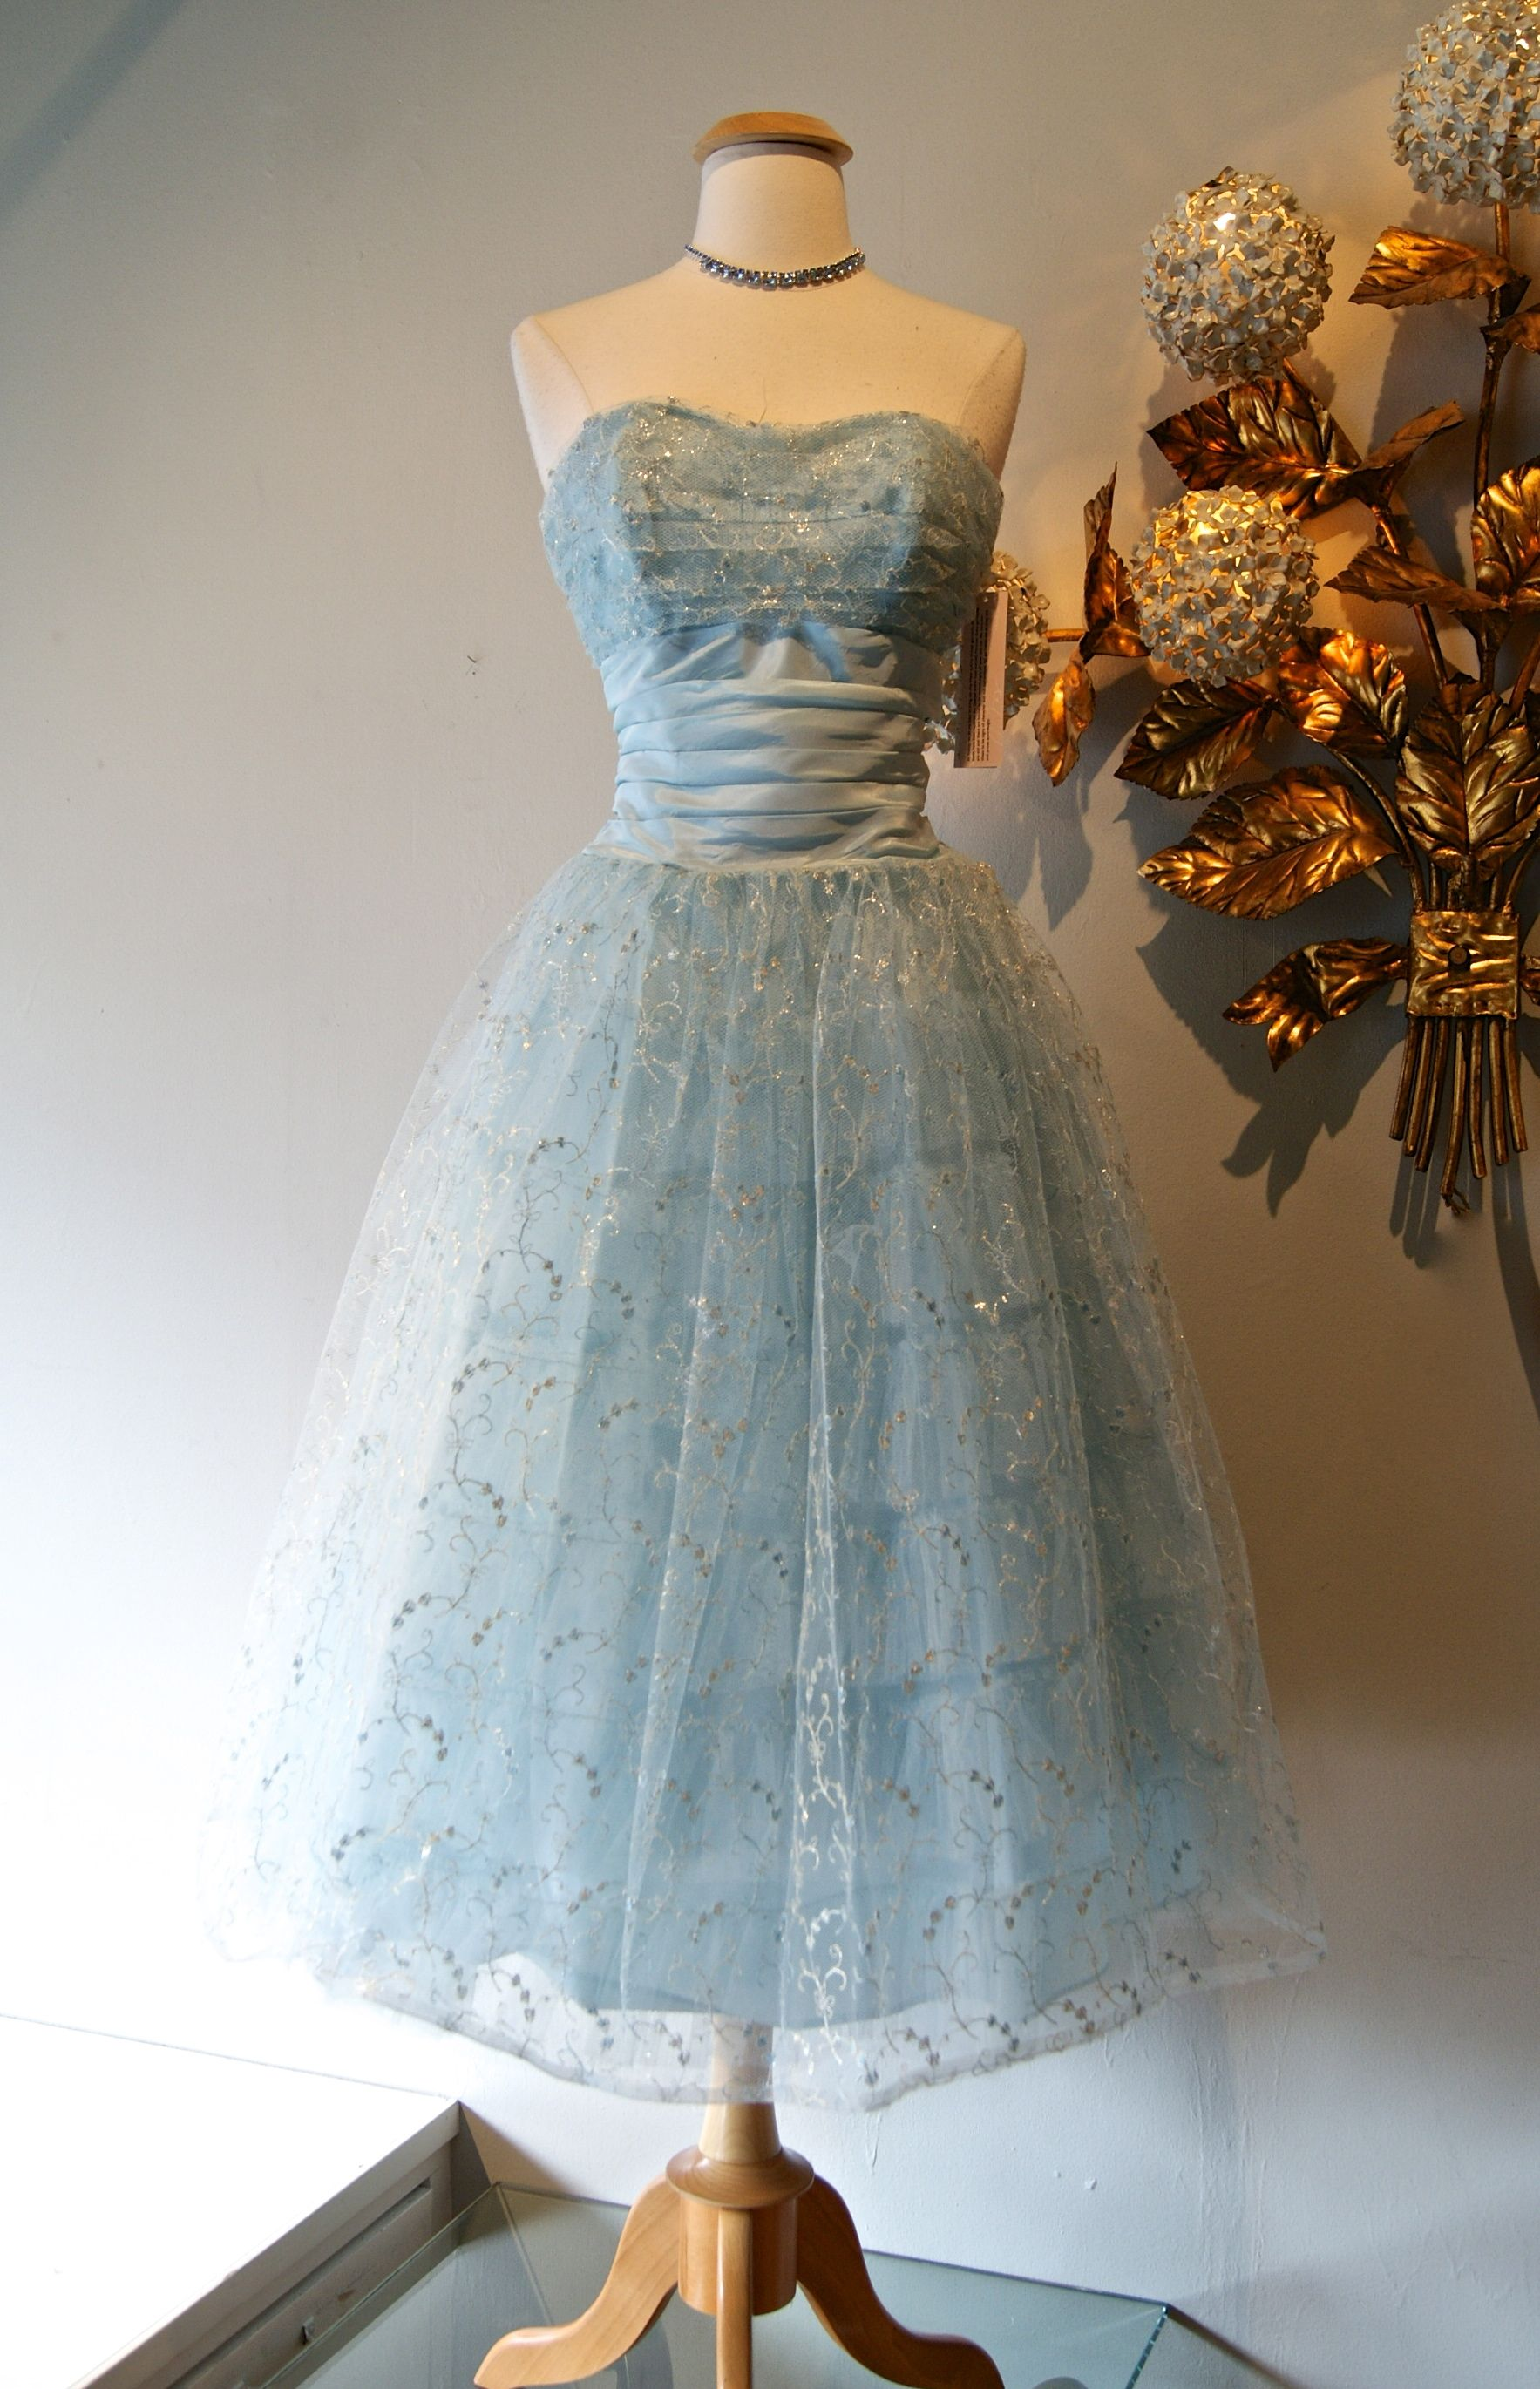 This Vintage Dress At Xtabay In Portland Would Be Beautiful For A Retro Maid Of Honor 50s Prom Dresses Dresses Prom Dresses [ 2741 x 1767 Pixel ]